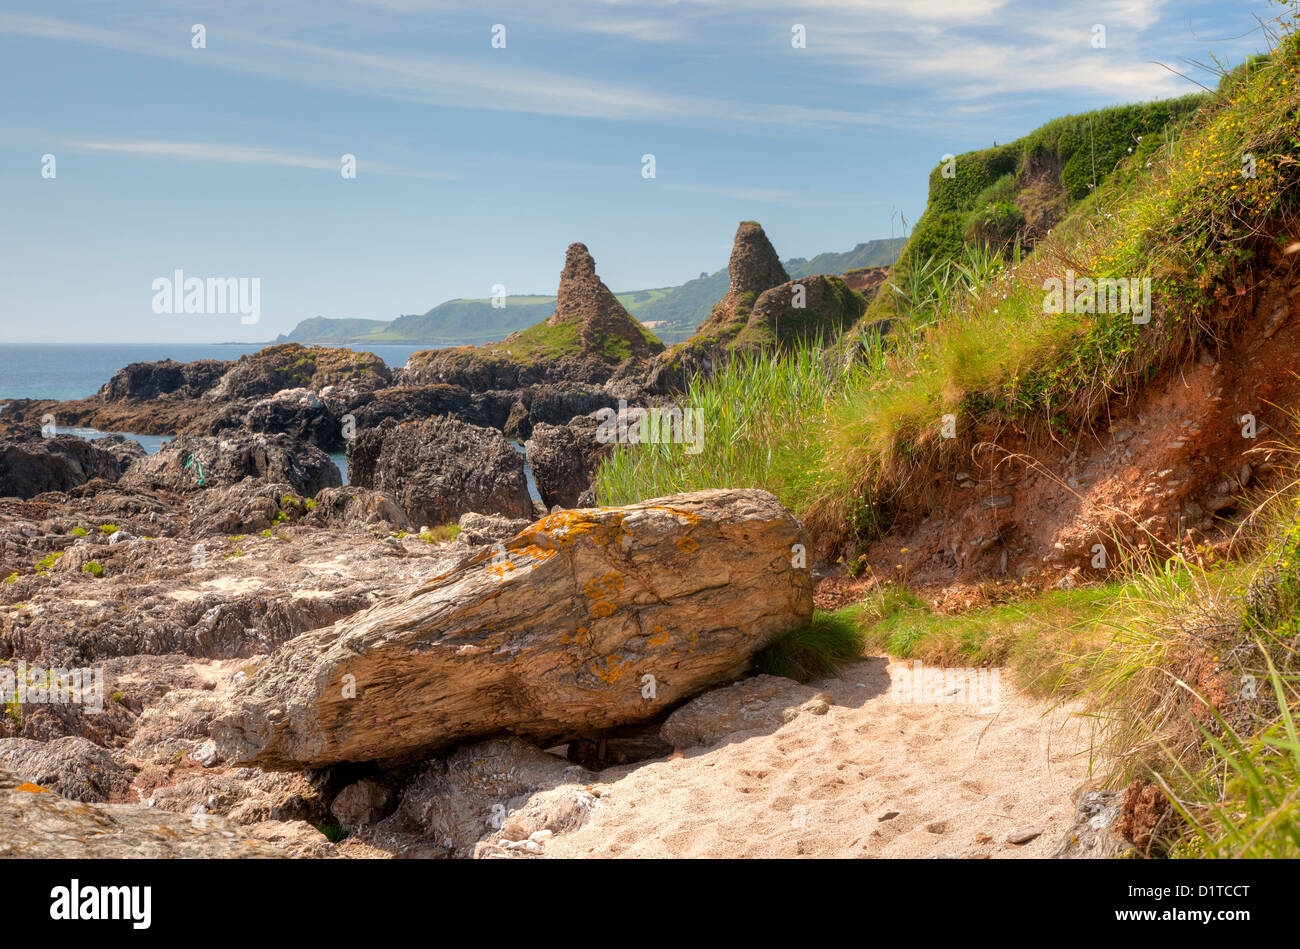 Rock formations at Great Mattiscombe Sand, Devon, England - Stock Image